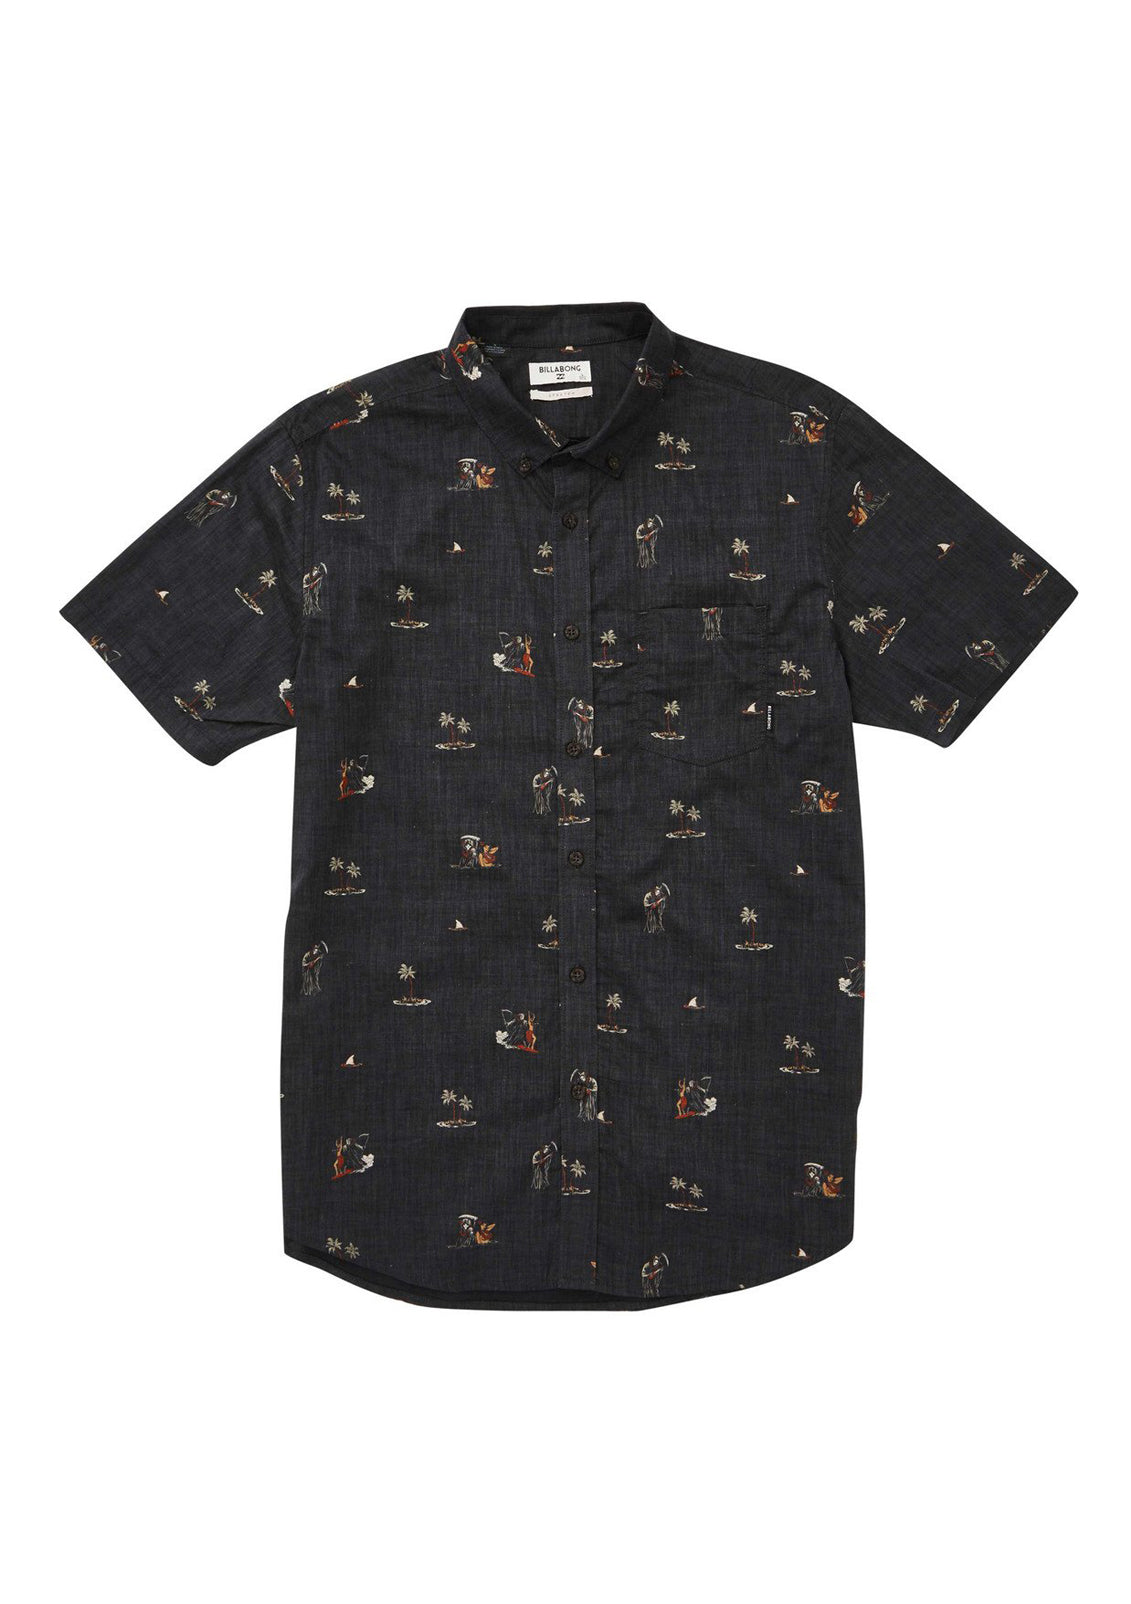 Little Boy's Sundays Floral Shirt